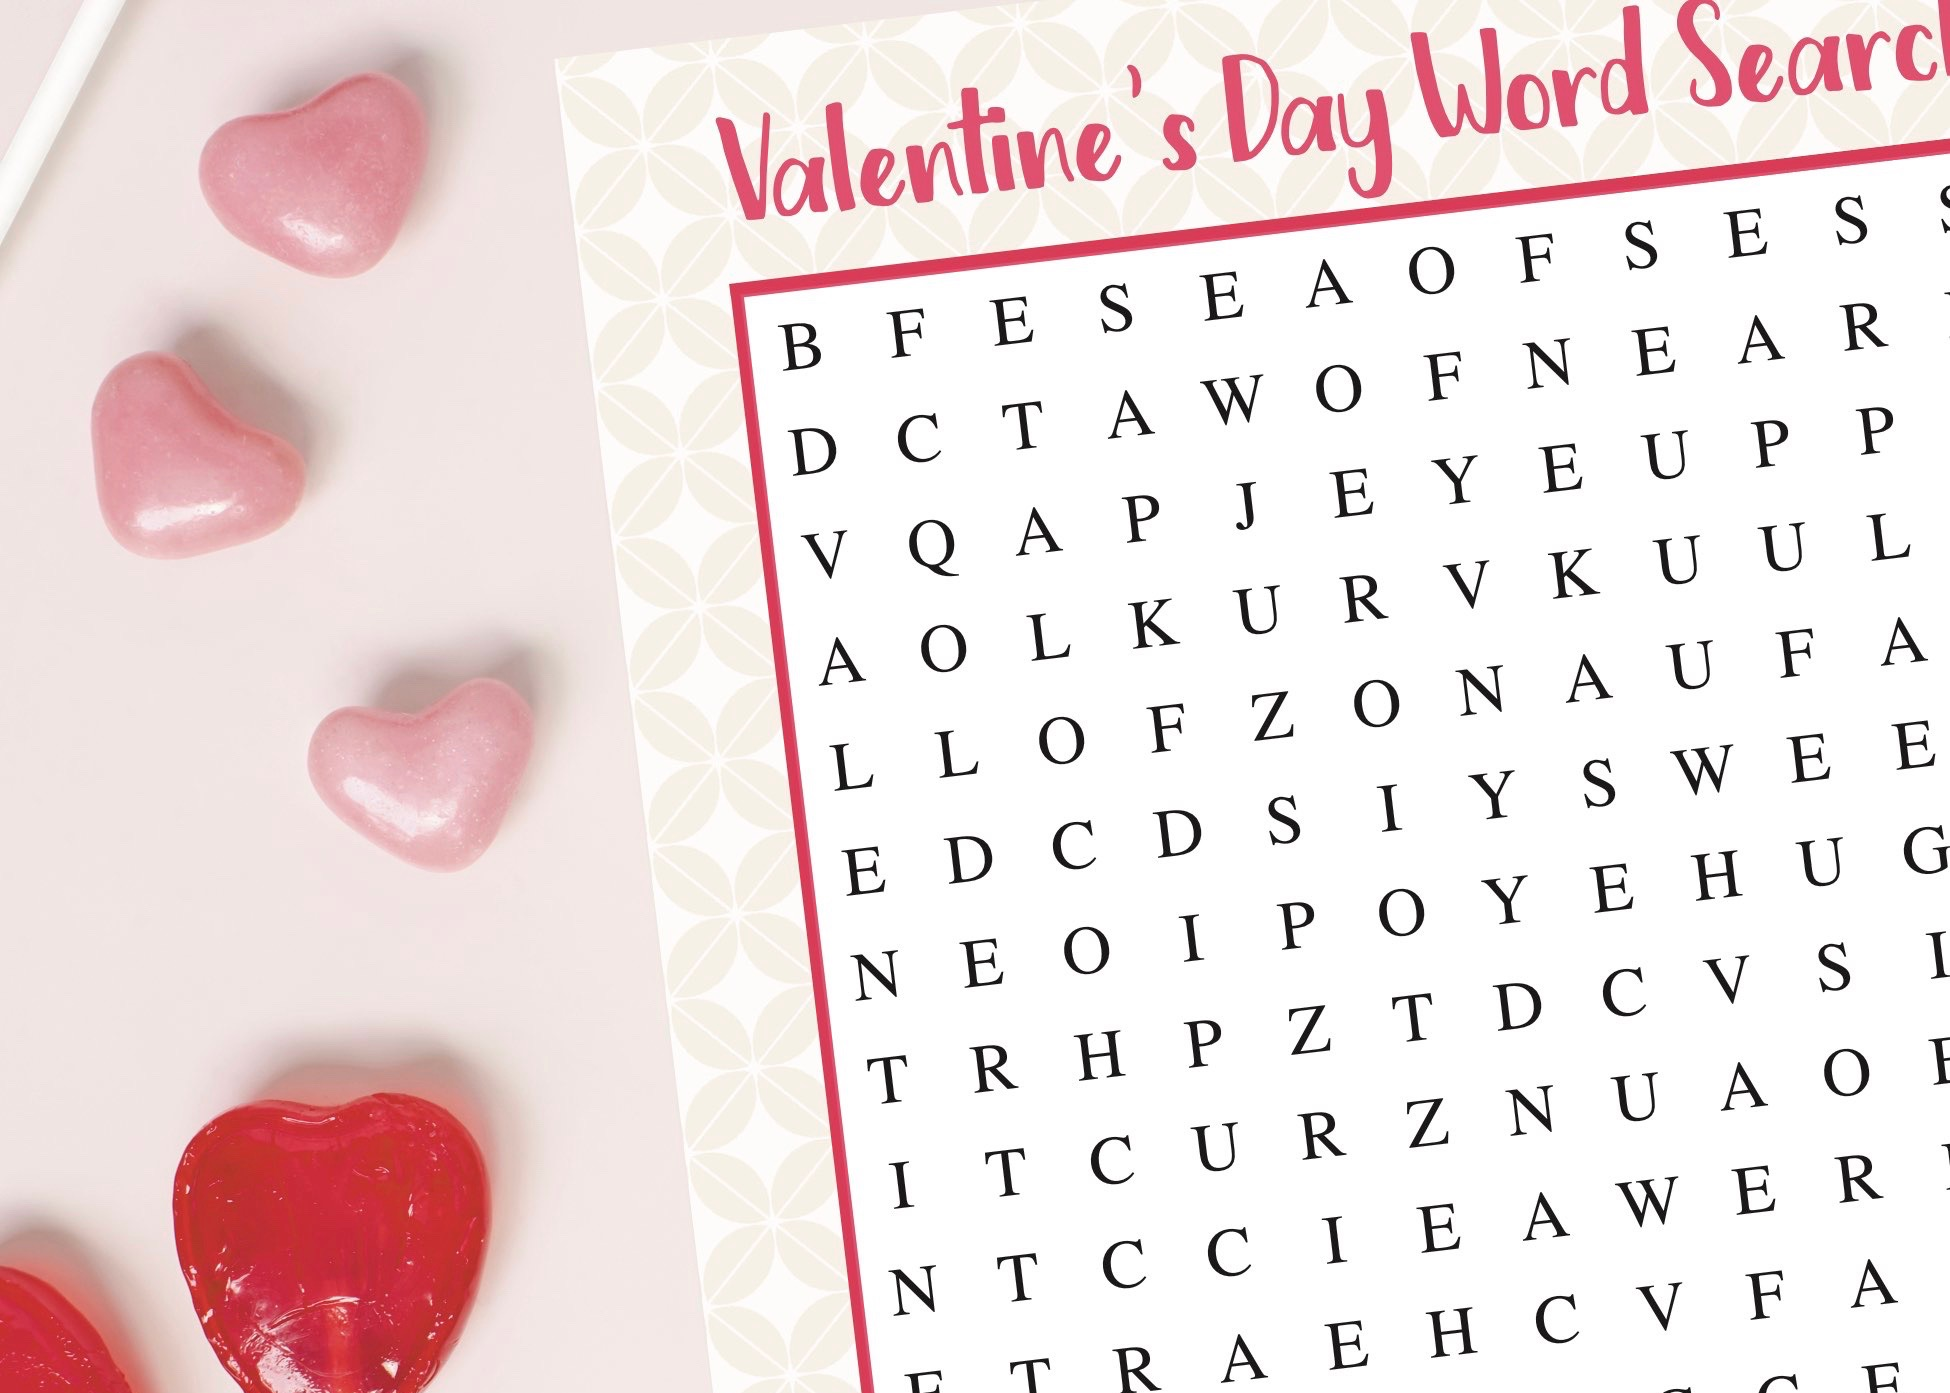 photo relating to Valentine's Day Word Search Printable identified as Valentines Working day Term Glance Printable - Every day Celebration Journal